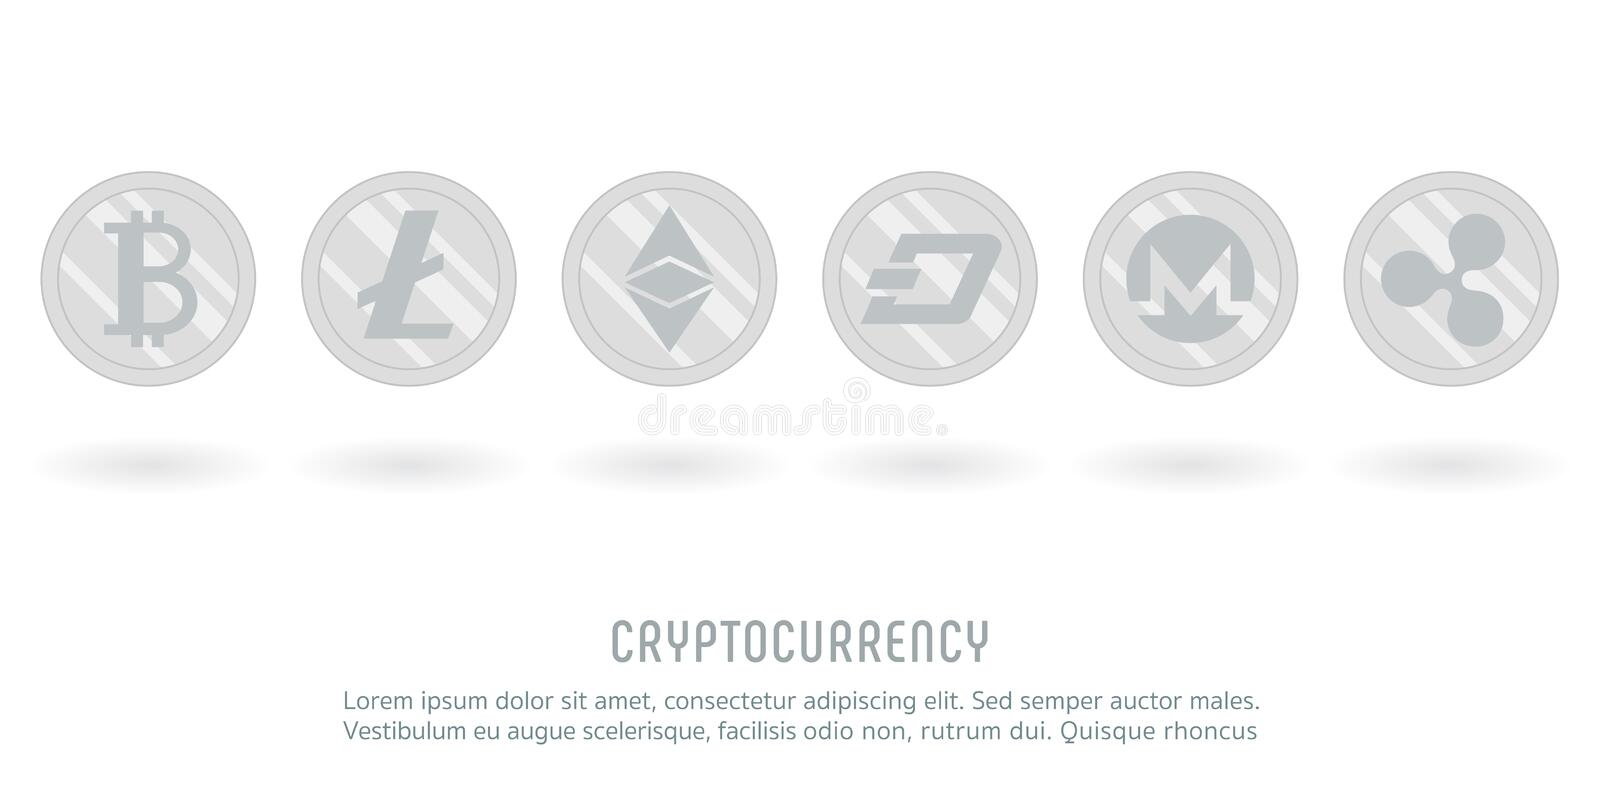 Cryptocurrency crypto silver coin stock illustration